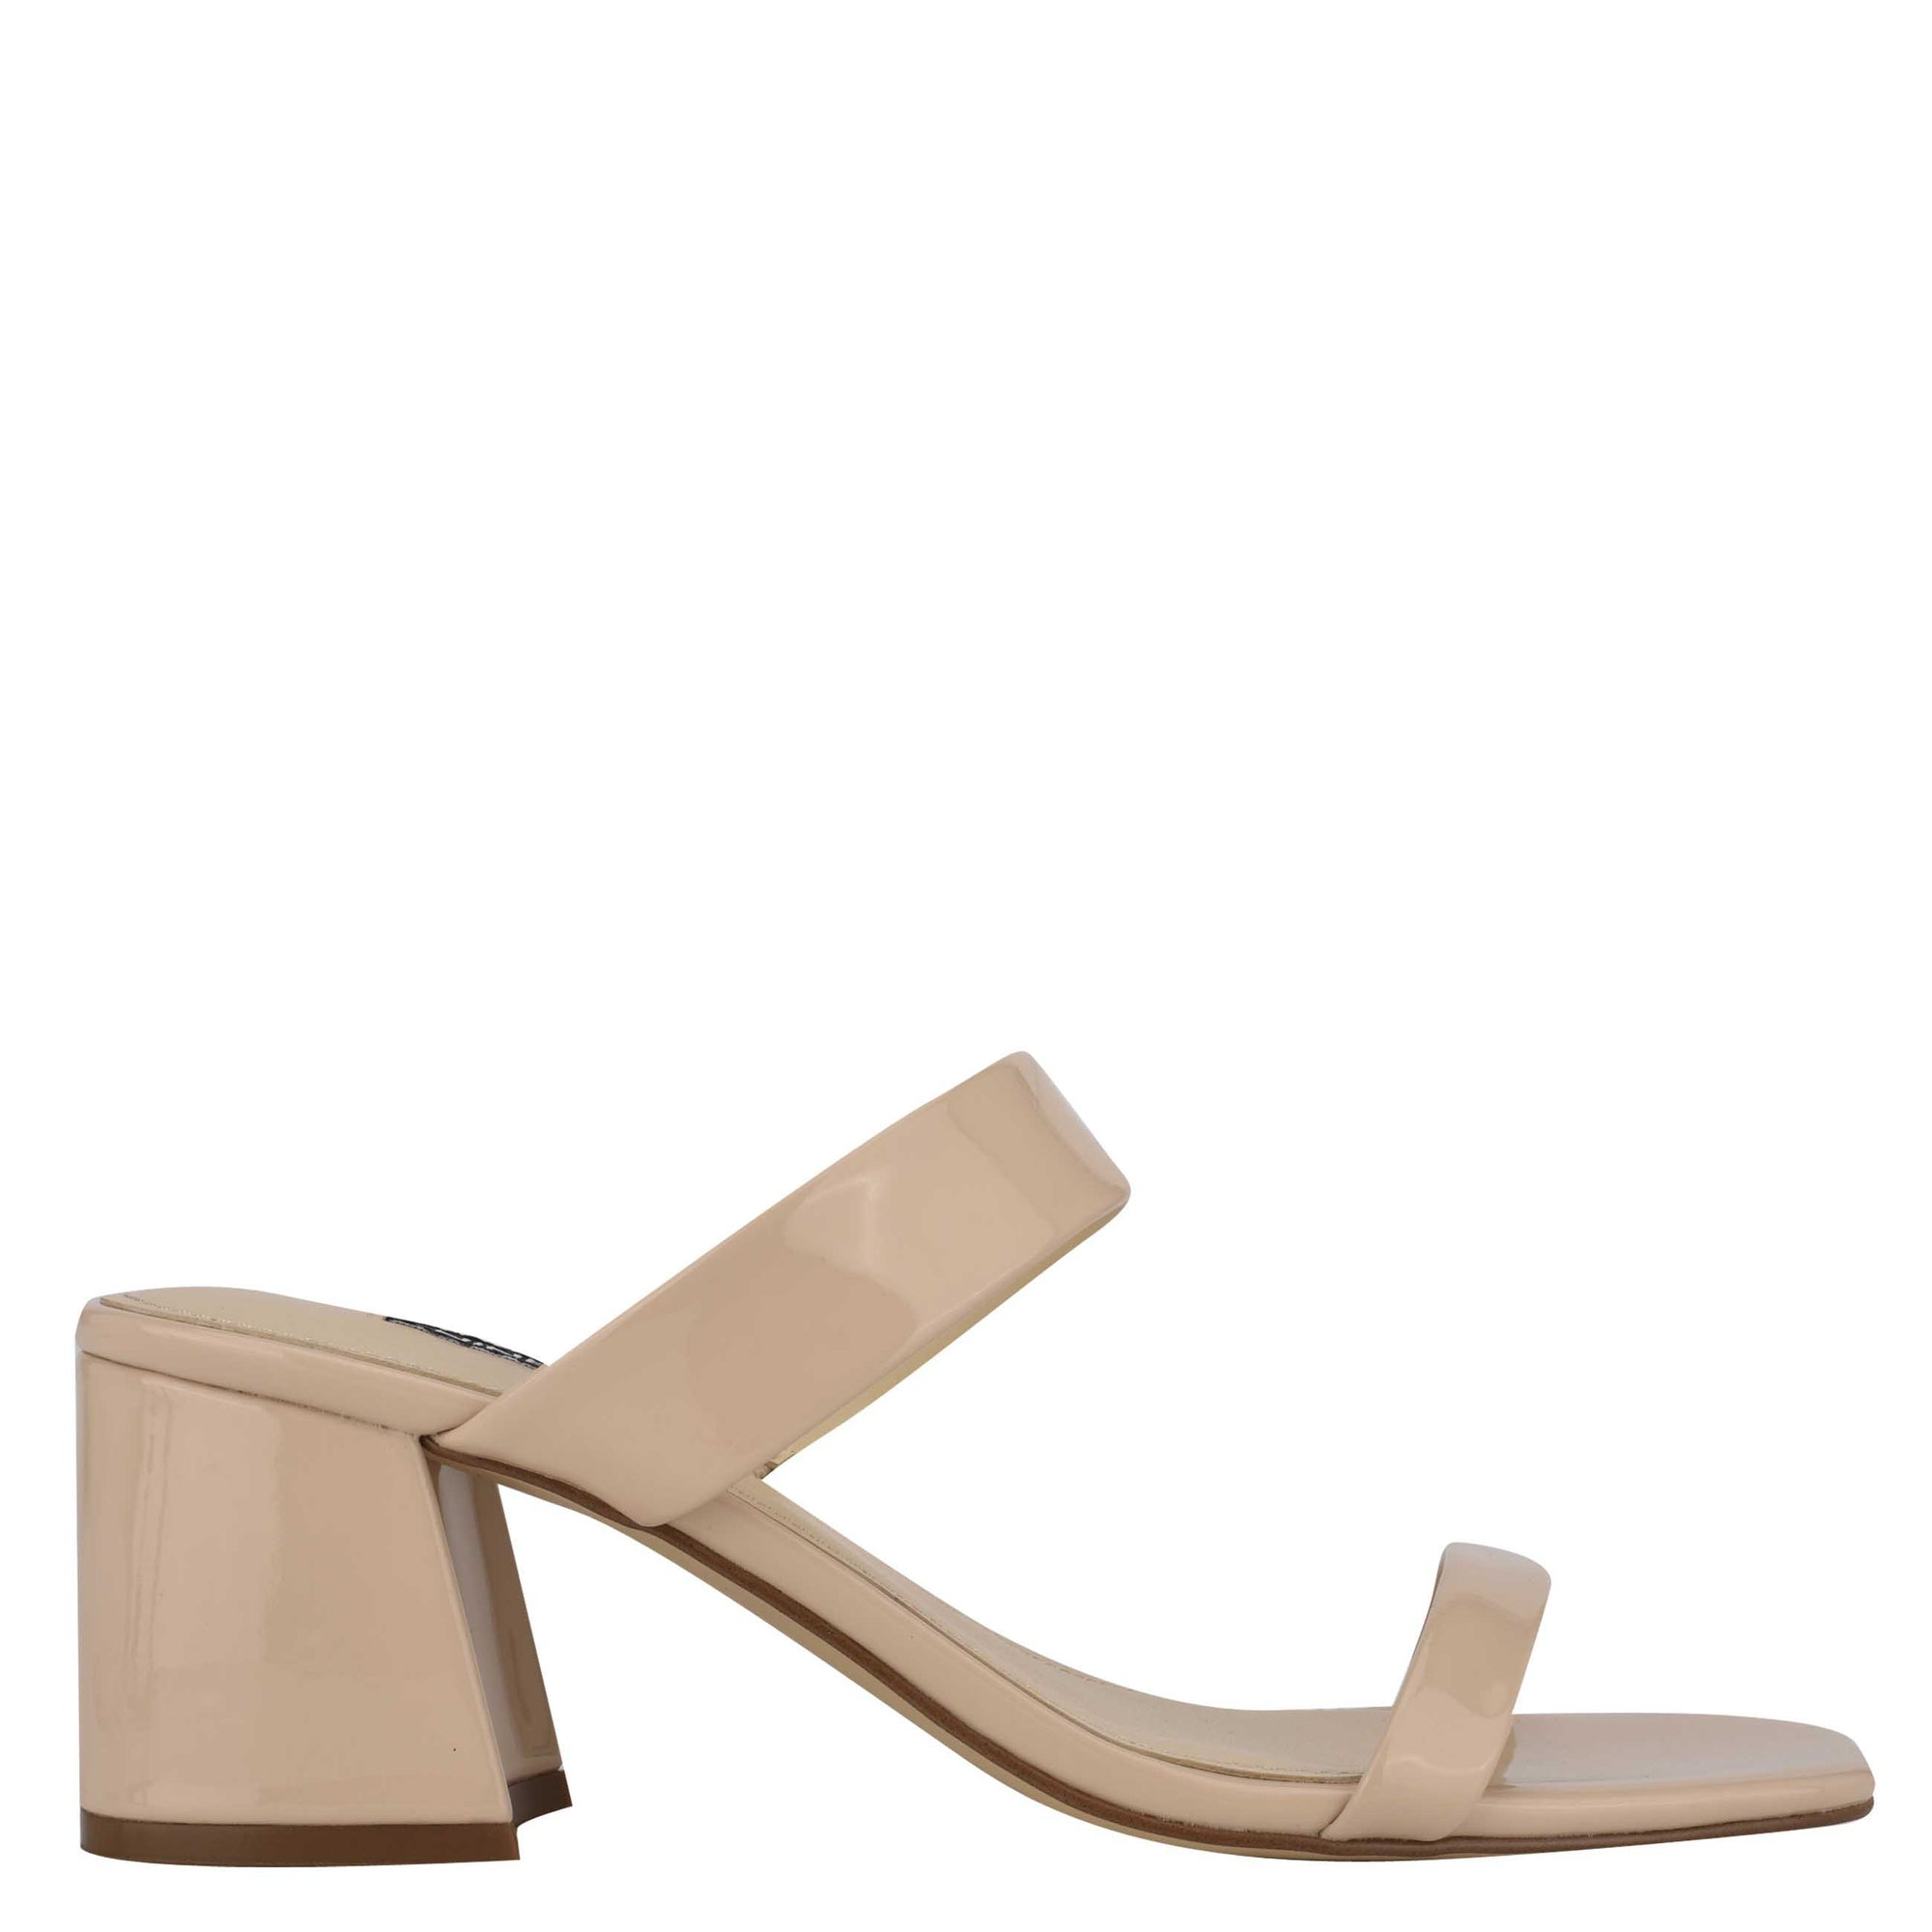 Galvin Block Heel Slide Sandals